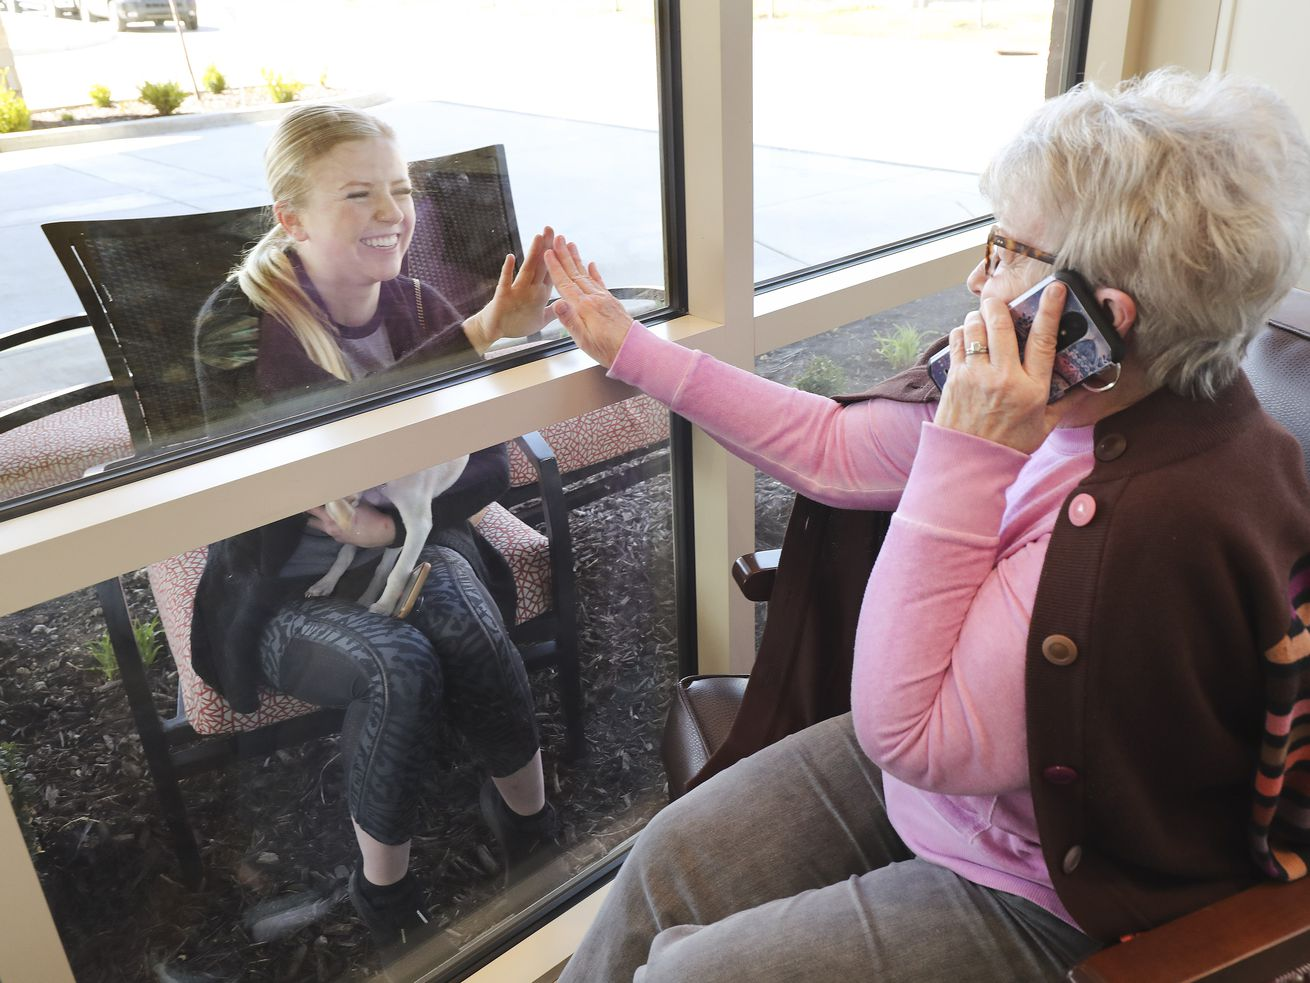 Critical connections: Residents of senior living community find ways to connect during coronavirus lockdown